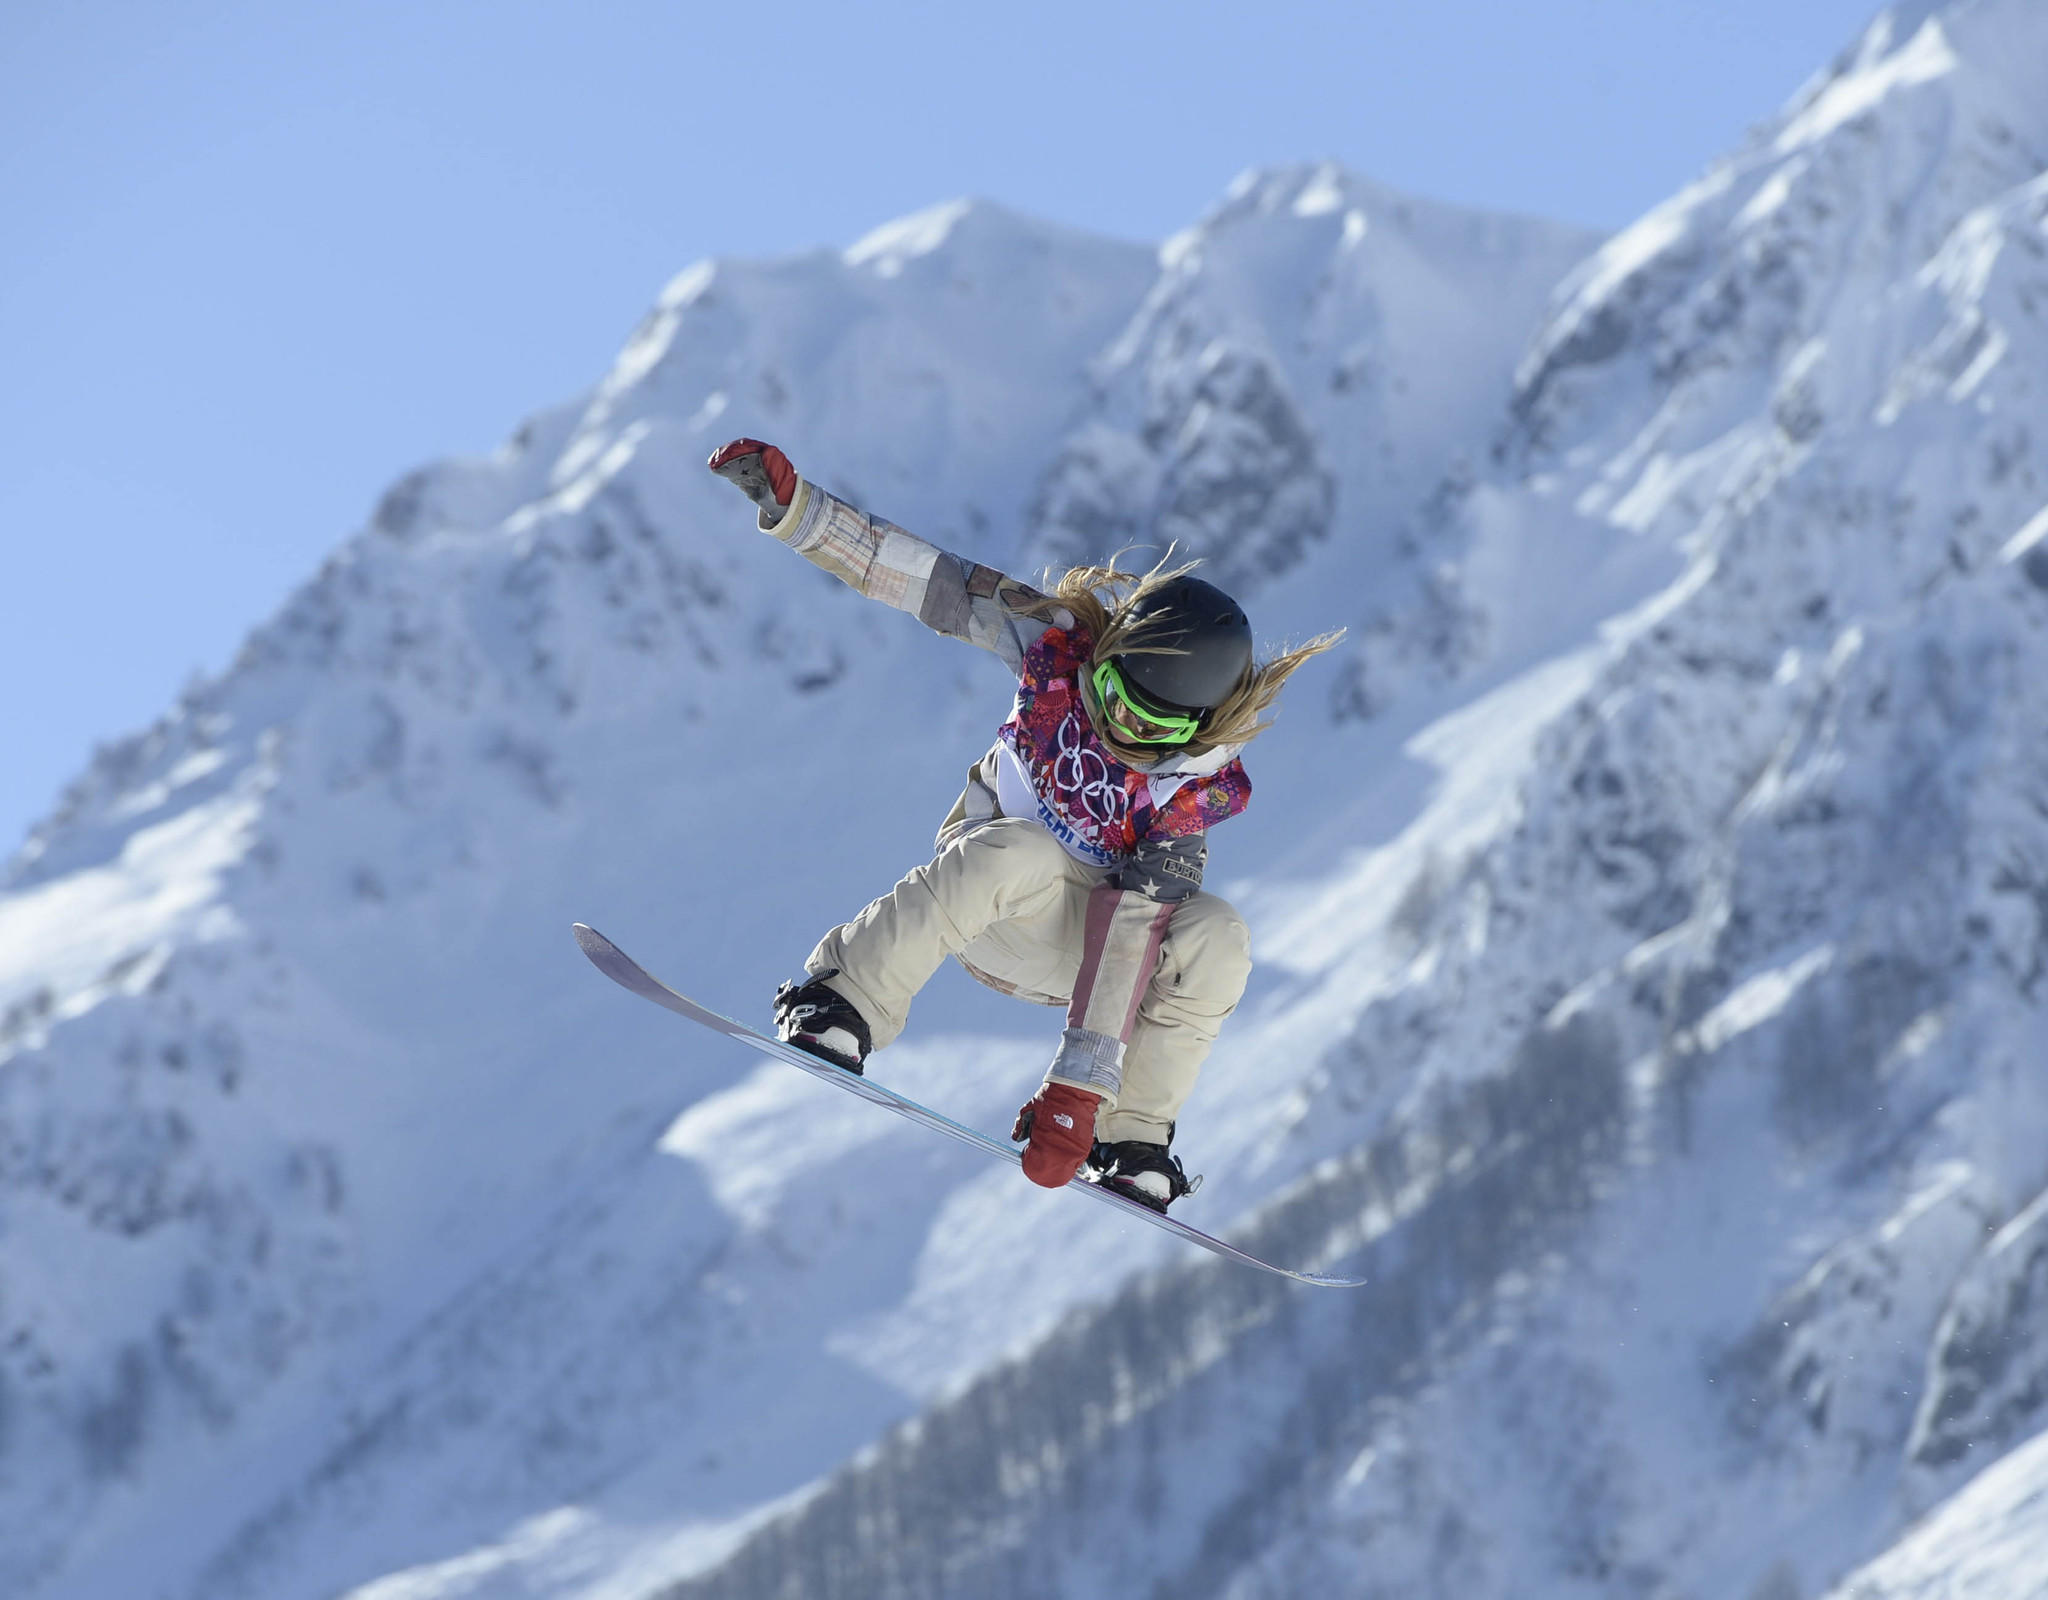 Jamie Anderson on the hill at the second jump during a training session at Extreme Park. (Jack Gruber/USA TODAY Sports Photo)